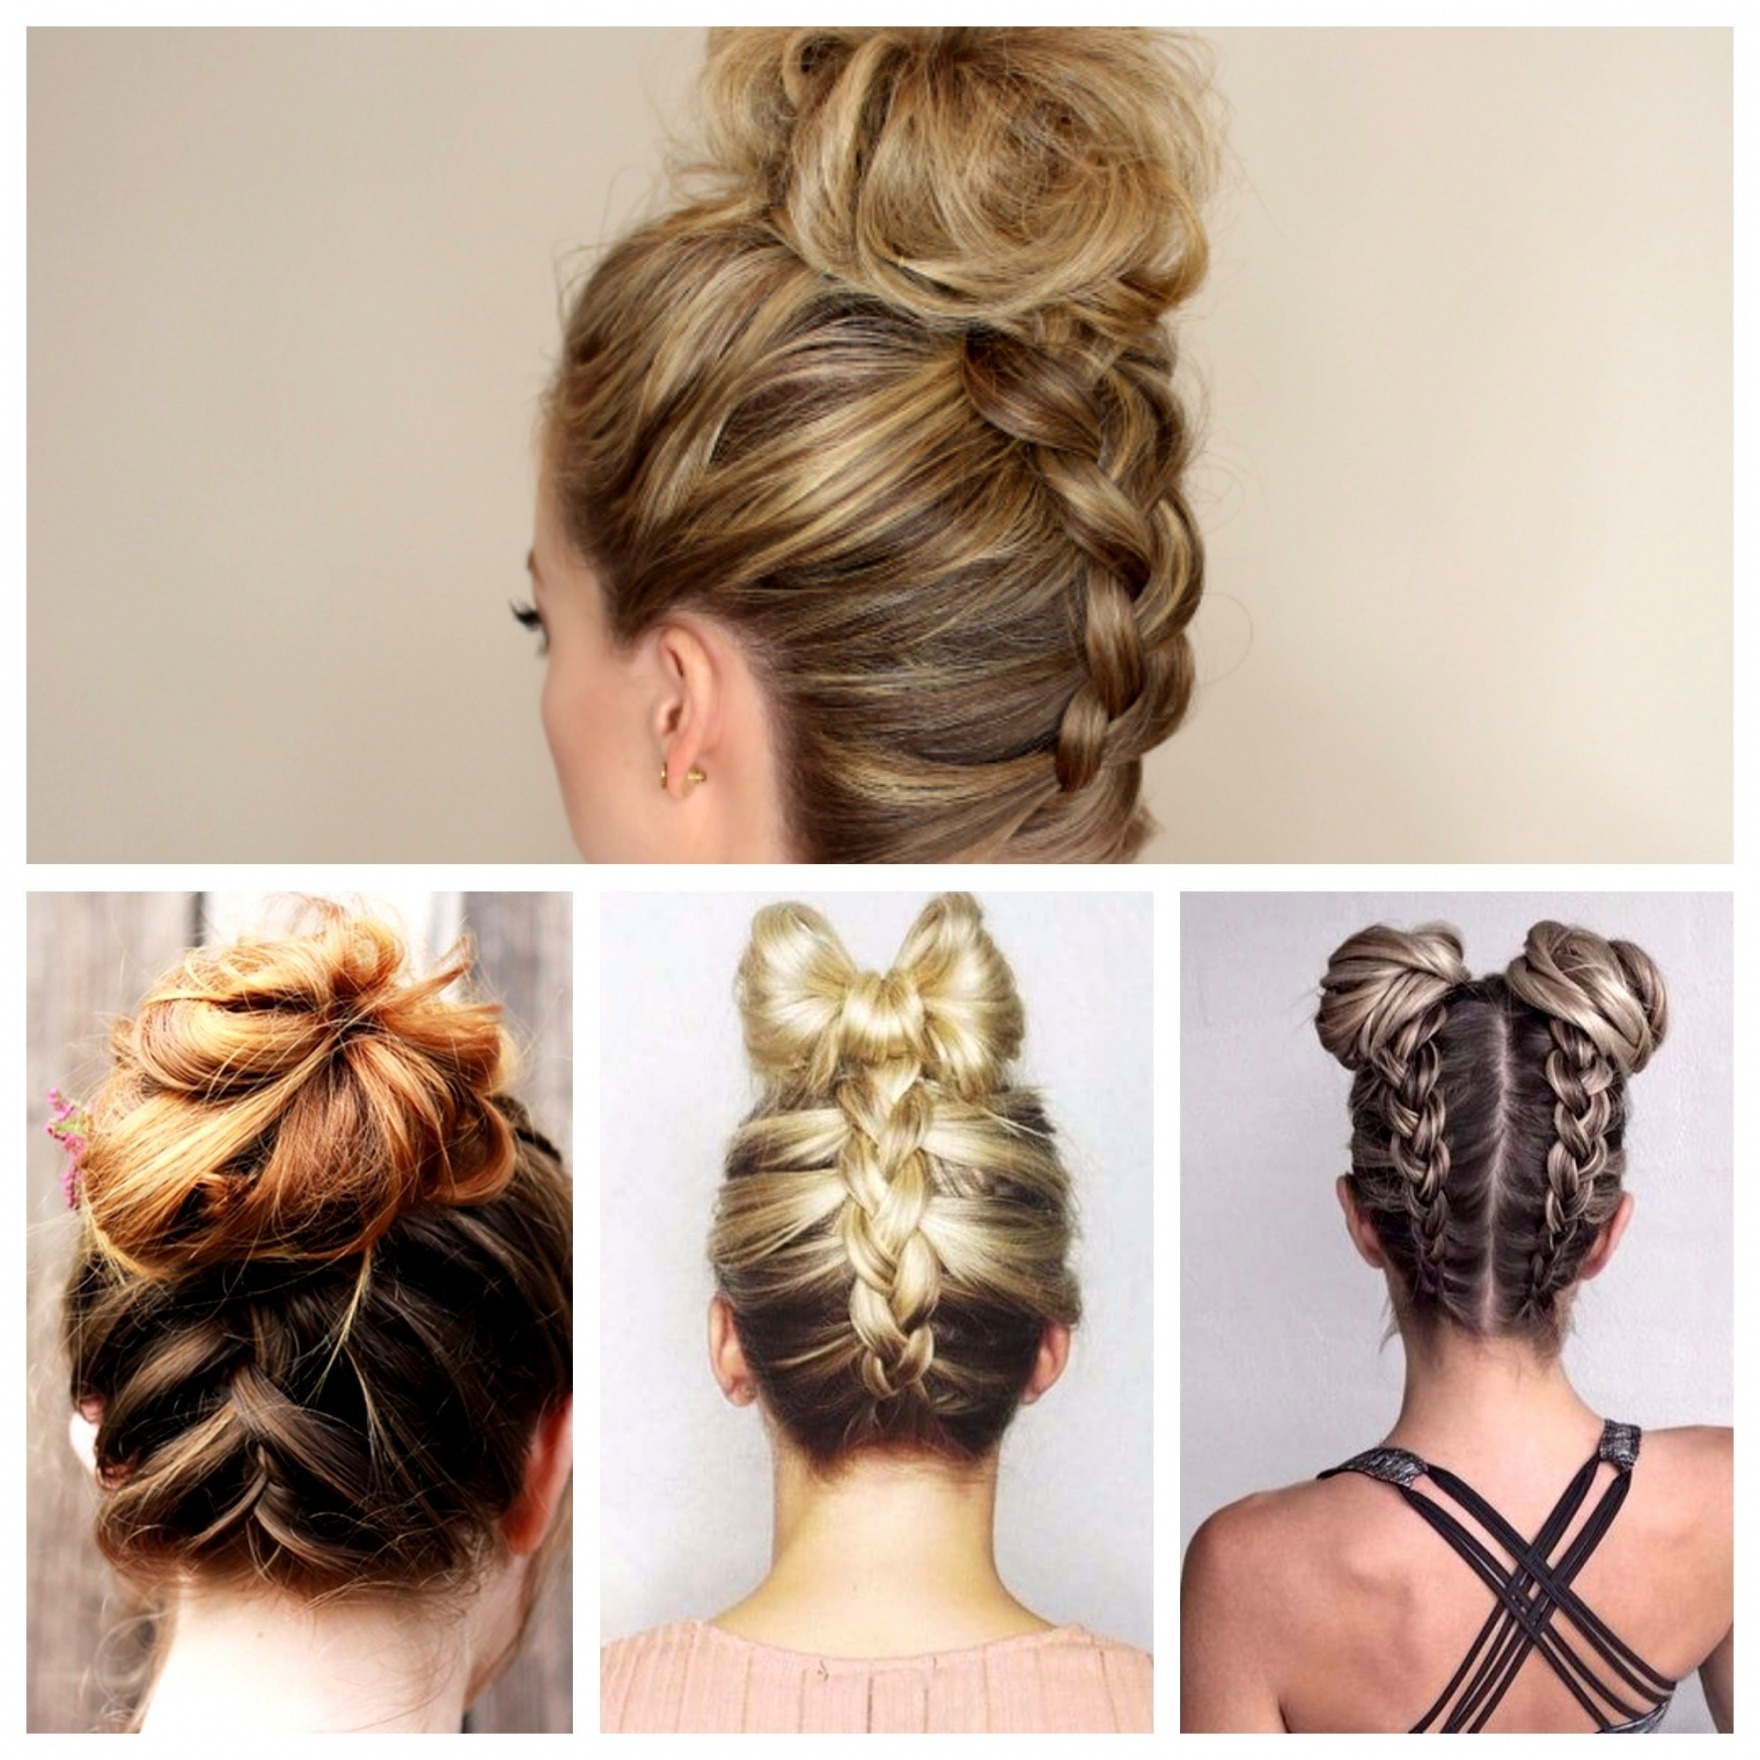 Braided Bun Hairstyles (View 6 of 15)